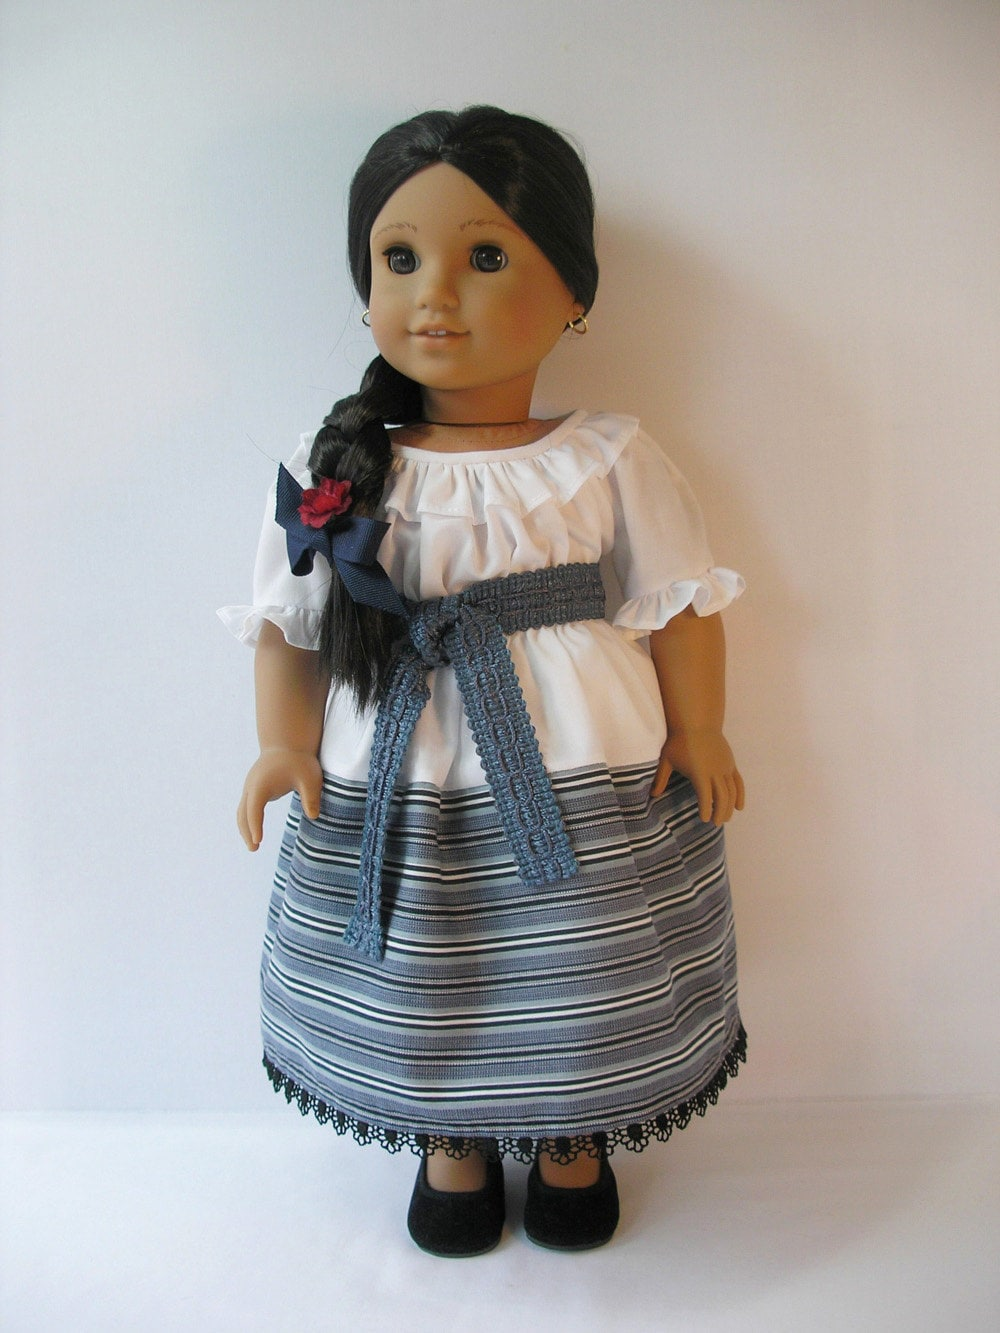 182410810 american girl josefina 18 inch doll dress by terristouch. Black Bedroom Furniture Sets. Home Design Ideas